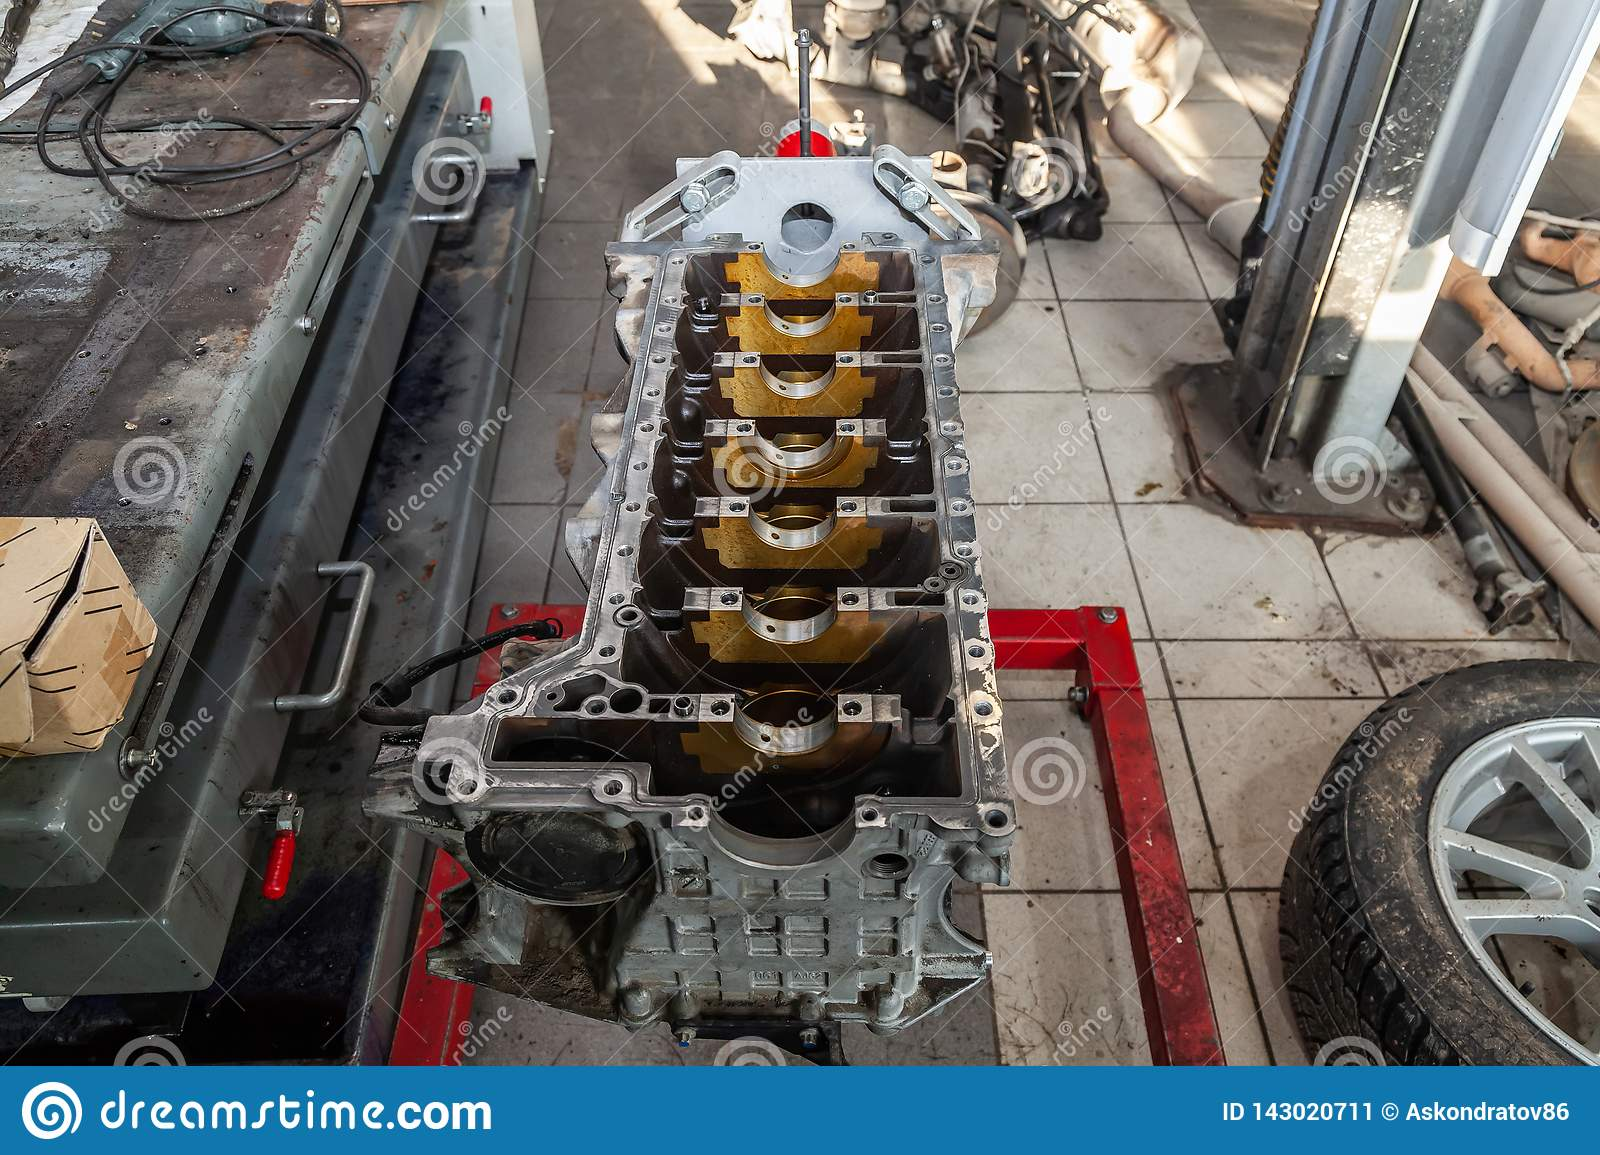 hight resolution of replacement engine used on a crane mounted for installation on a car after a breakdown and